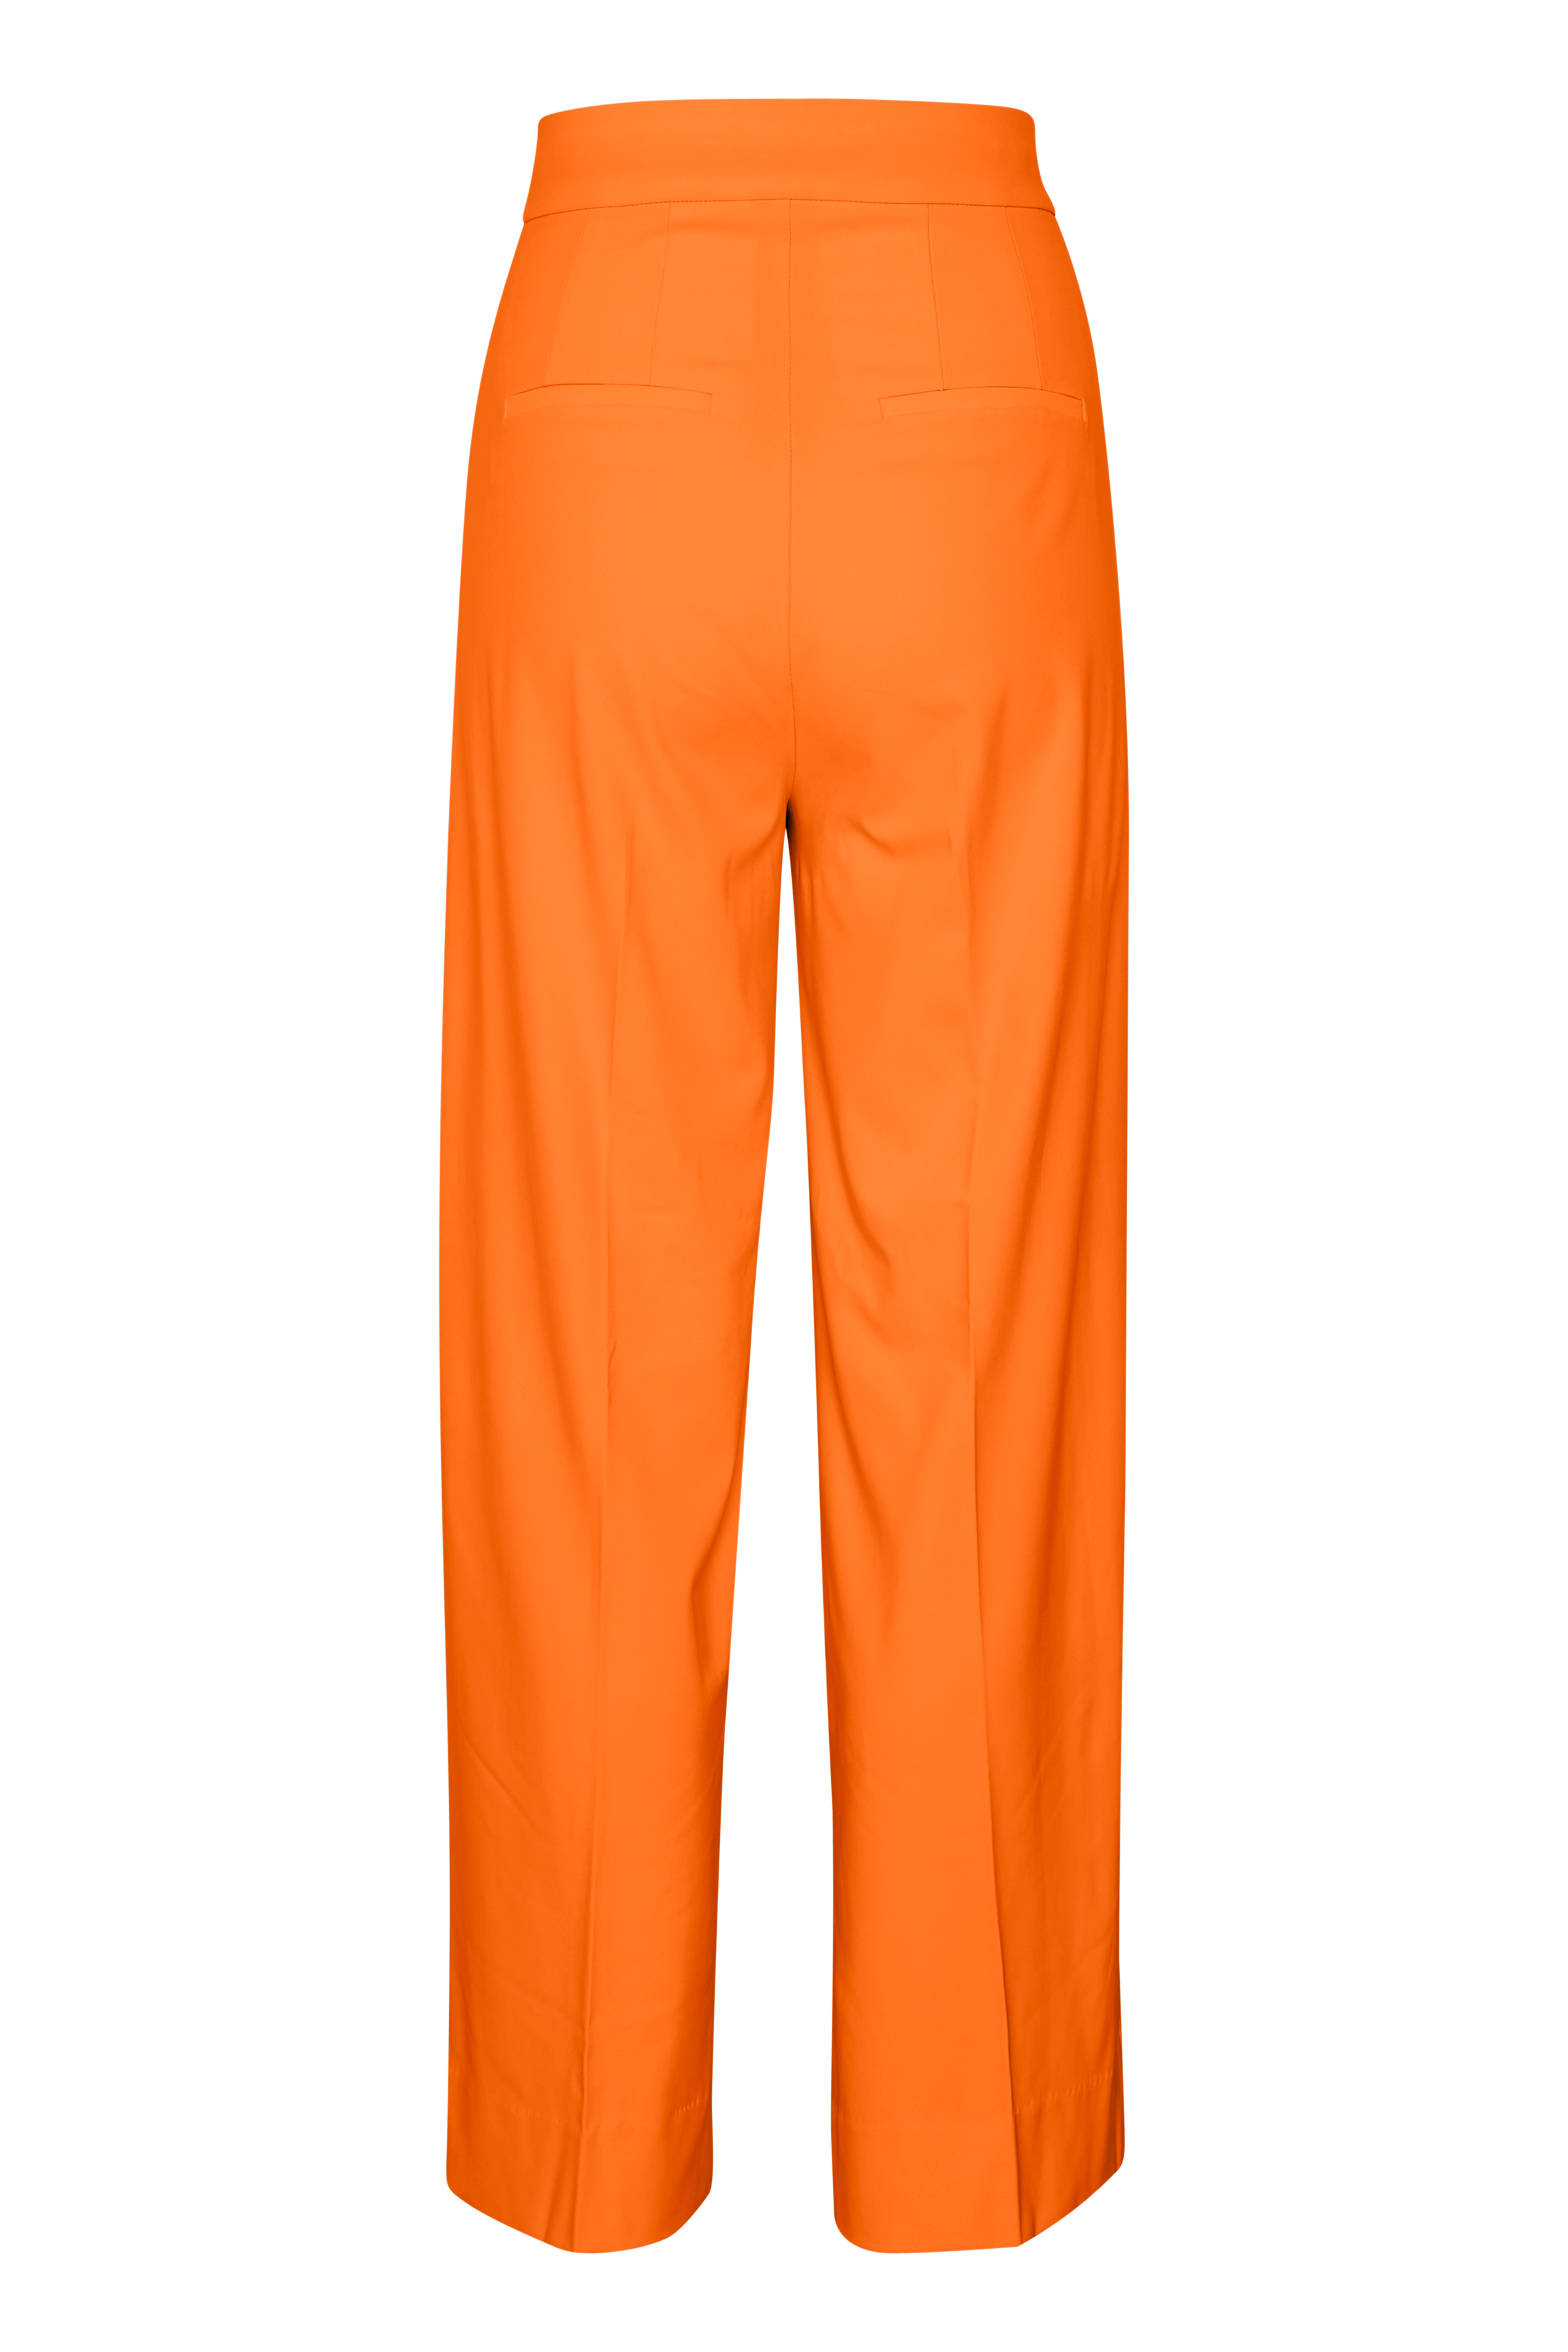 Gold Flame Pants Suiting – Køb Gold Flame Pants Suiting fra str. 32-44 her